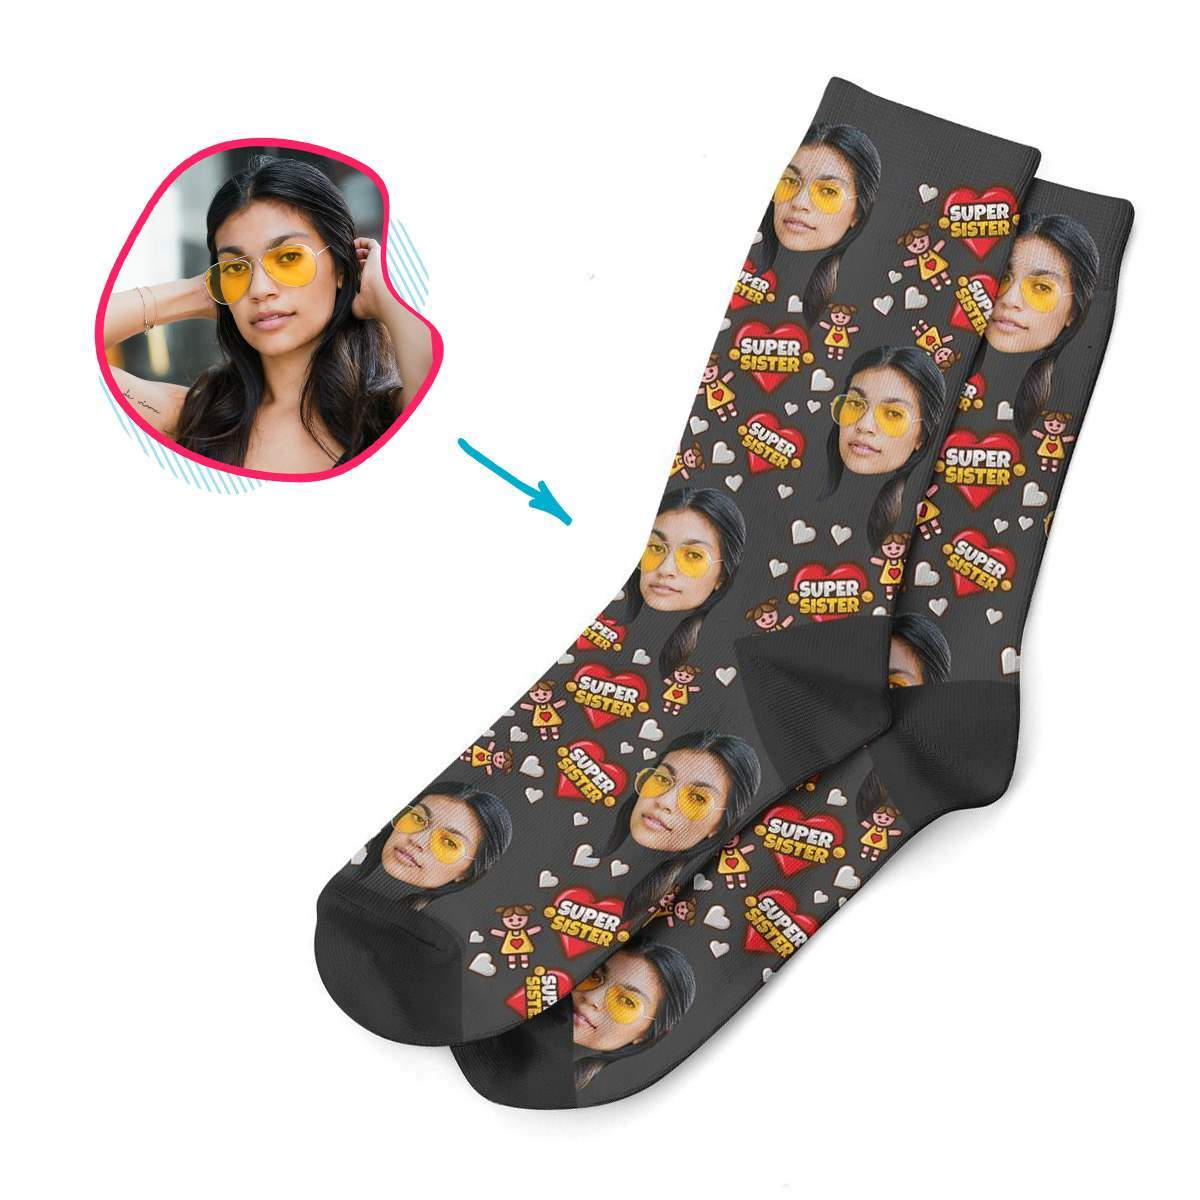 white Super Sister socks personalized with photo of face printed on them